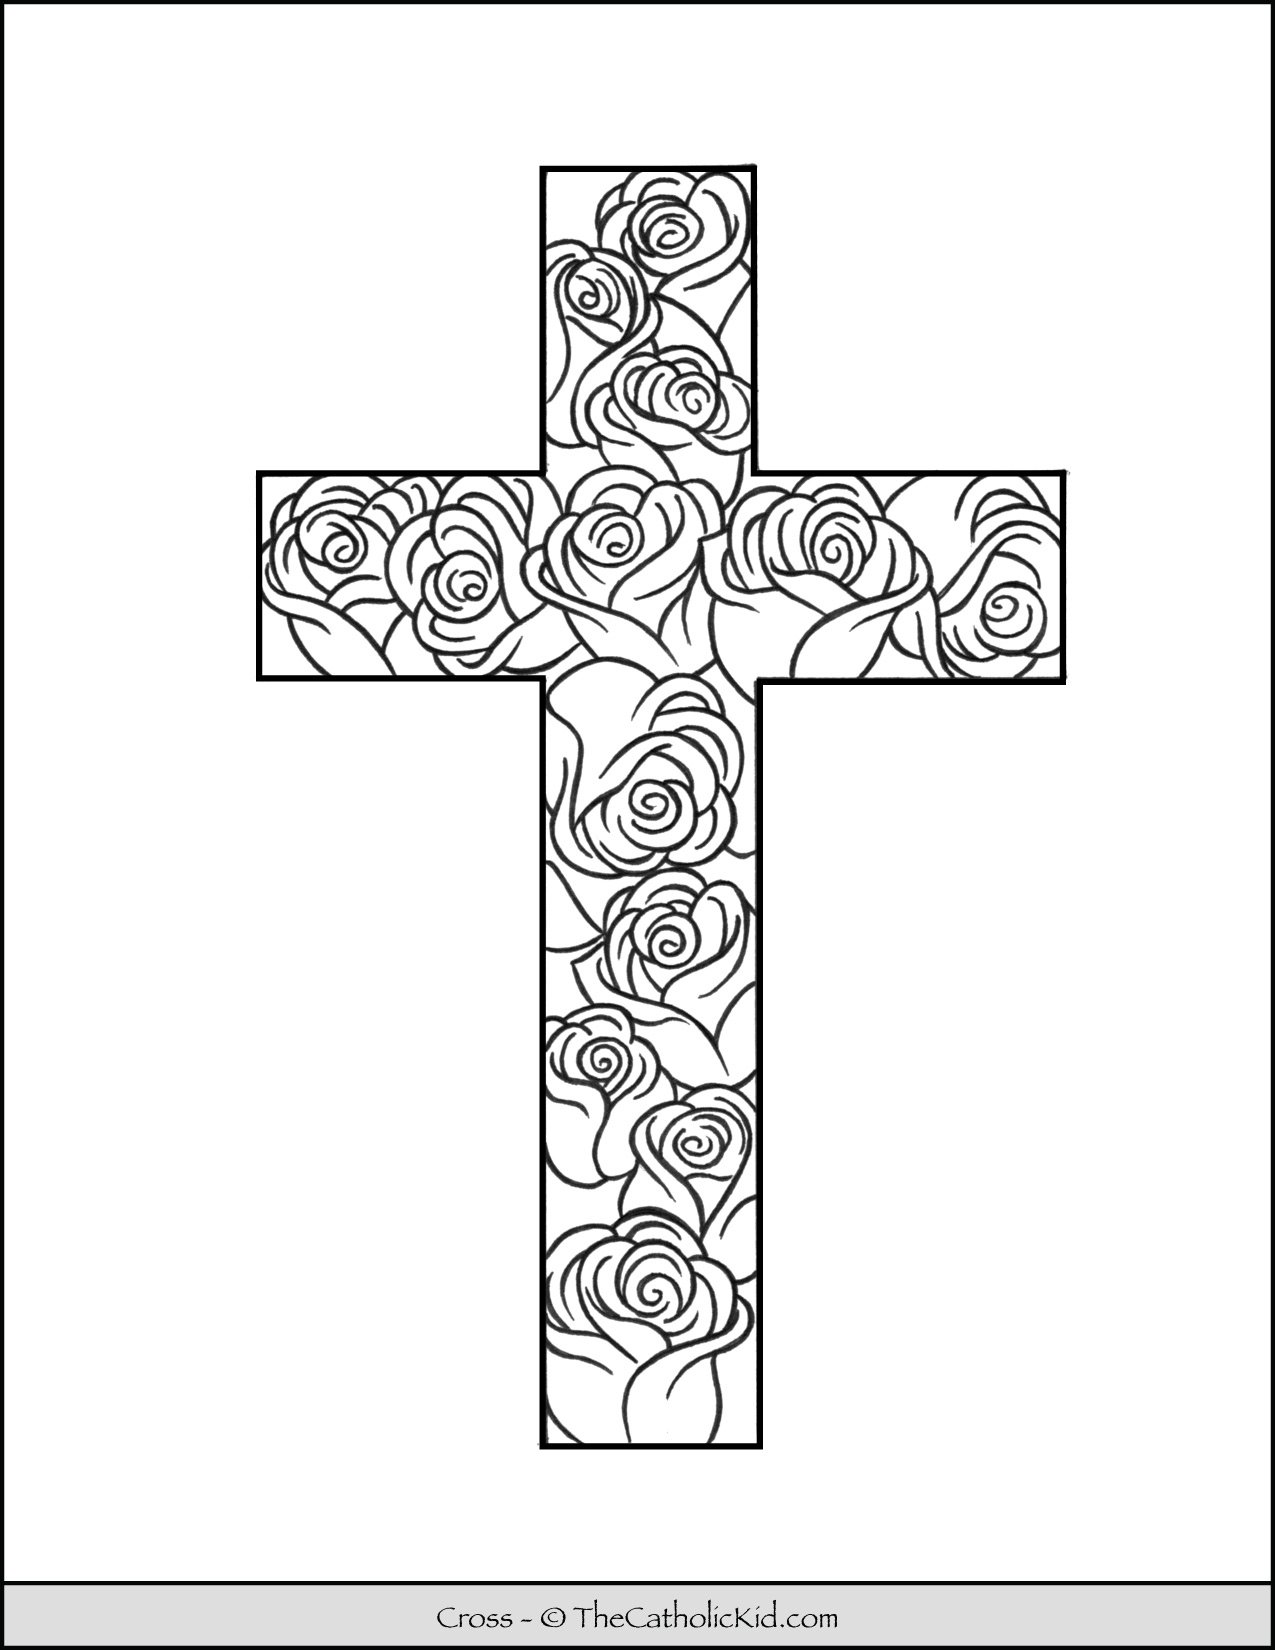 Cross Coloring Page With Rose Pattern